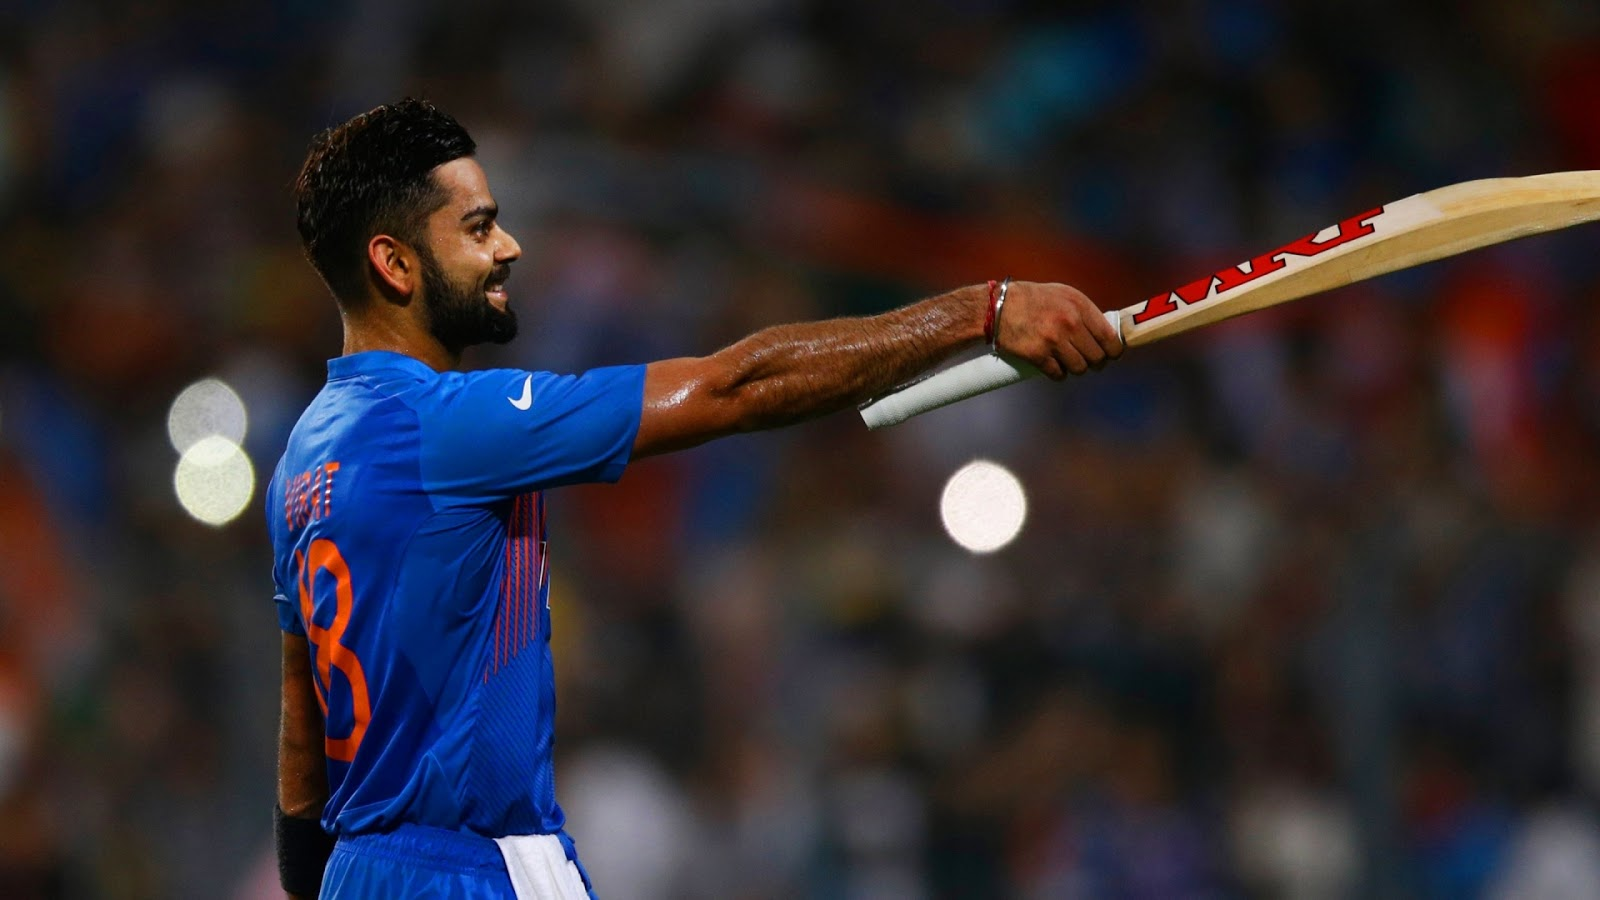 Virat Kohli blames poor batting for loss to NZ